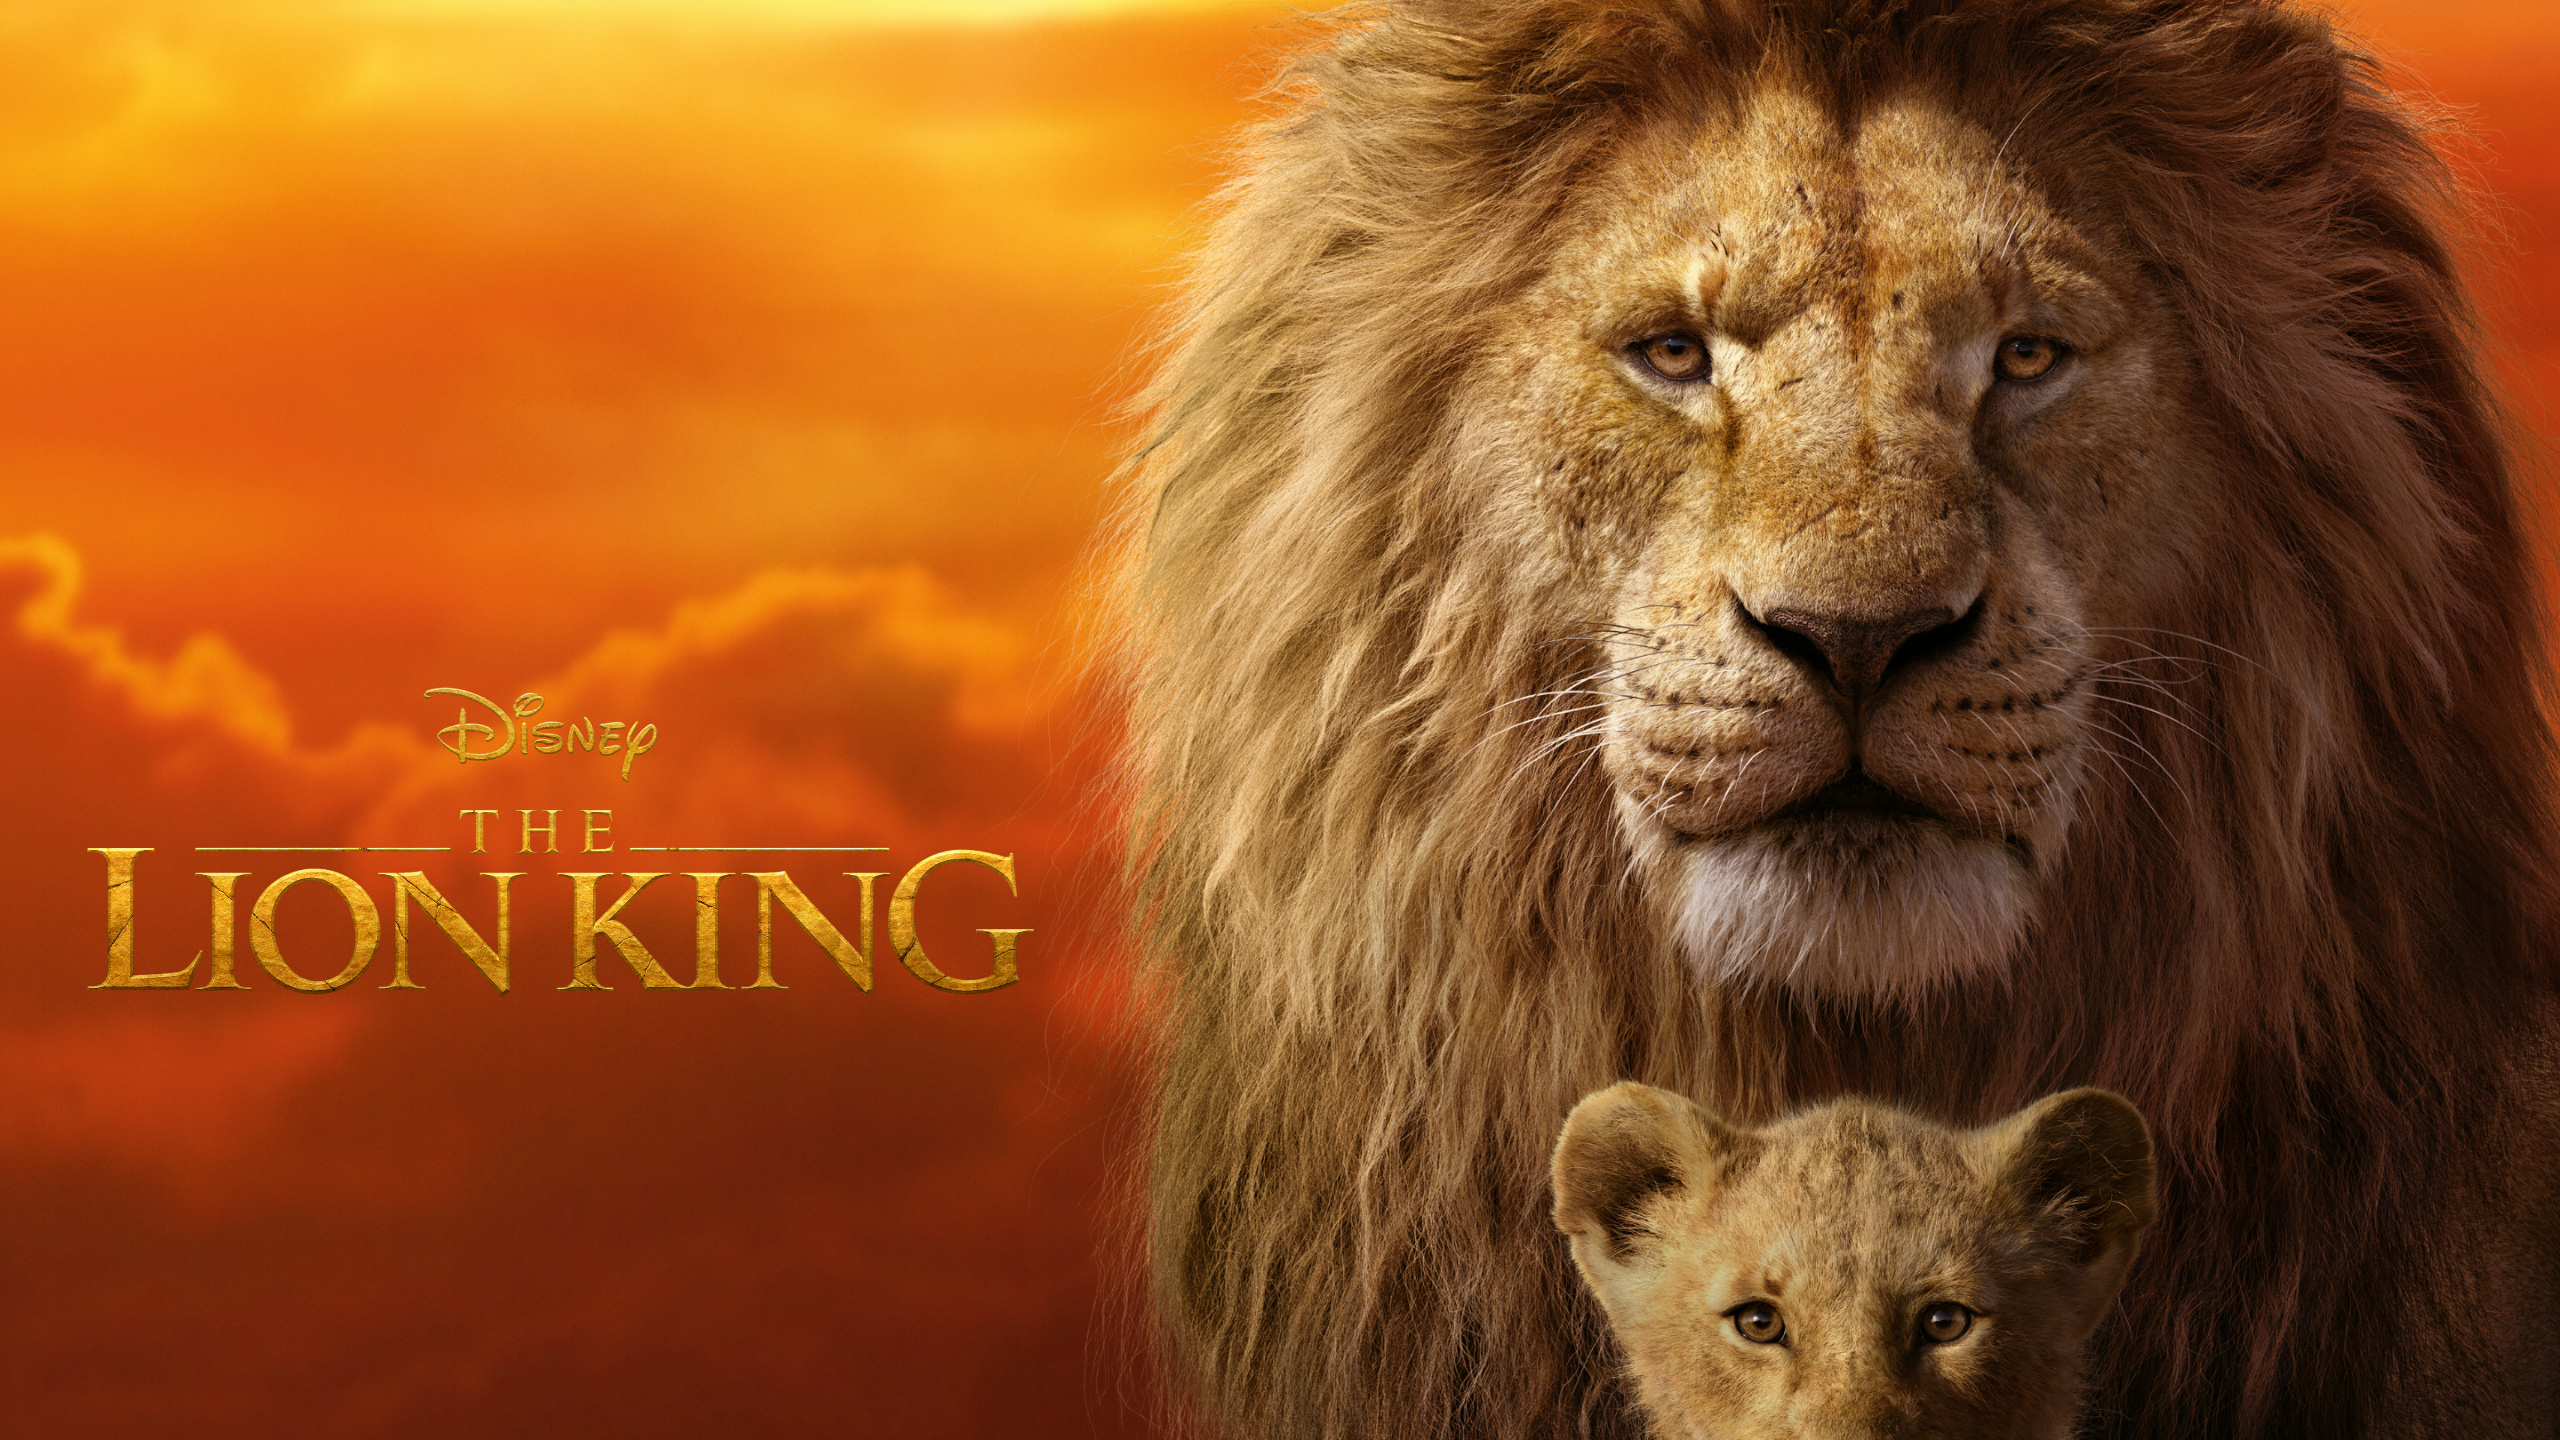 The Lion King (2019) Wallpaper by crillyboy25 on DeviantArt